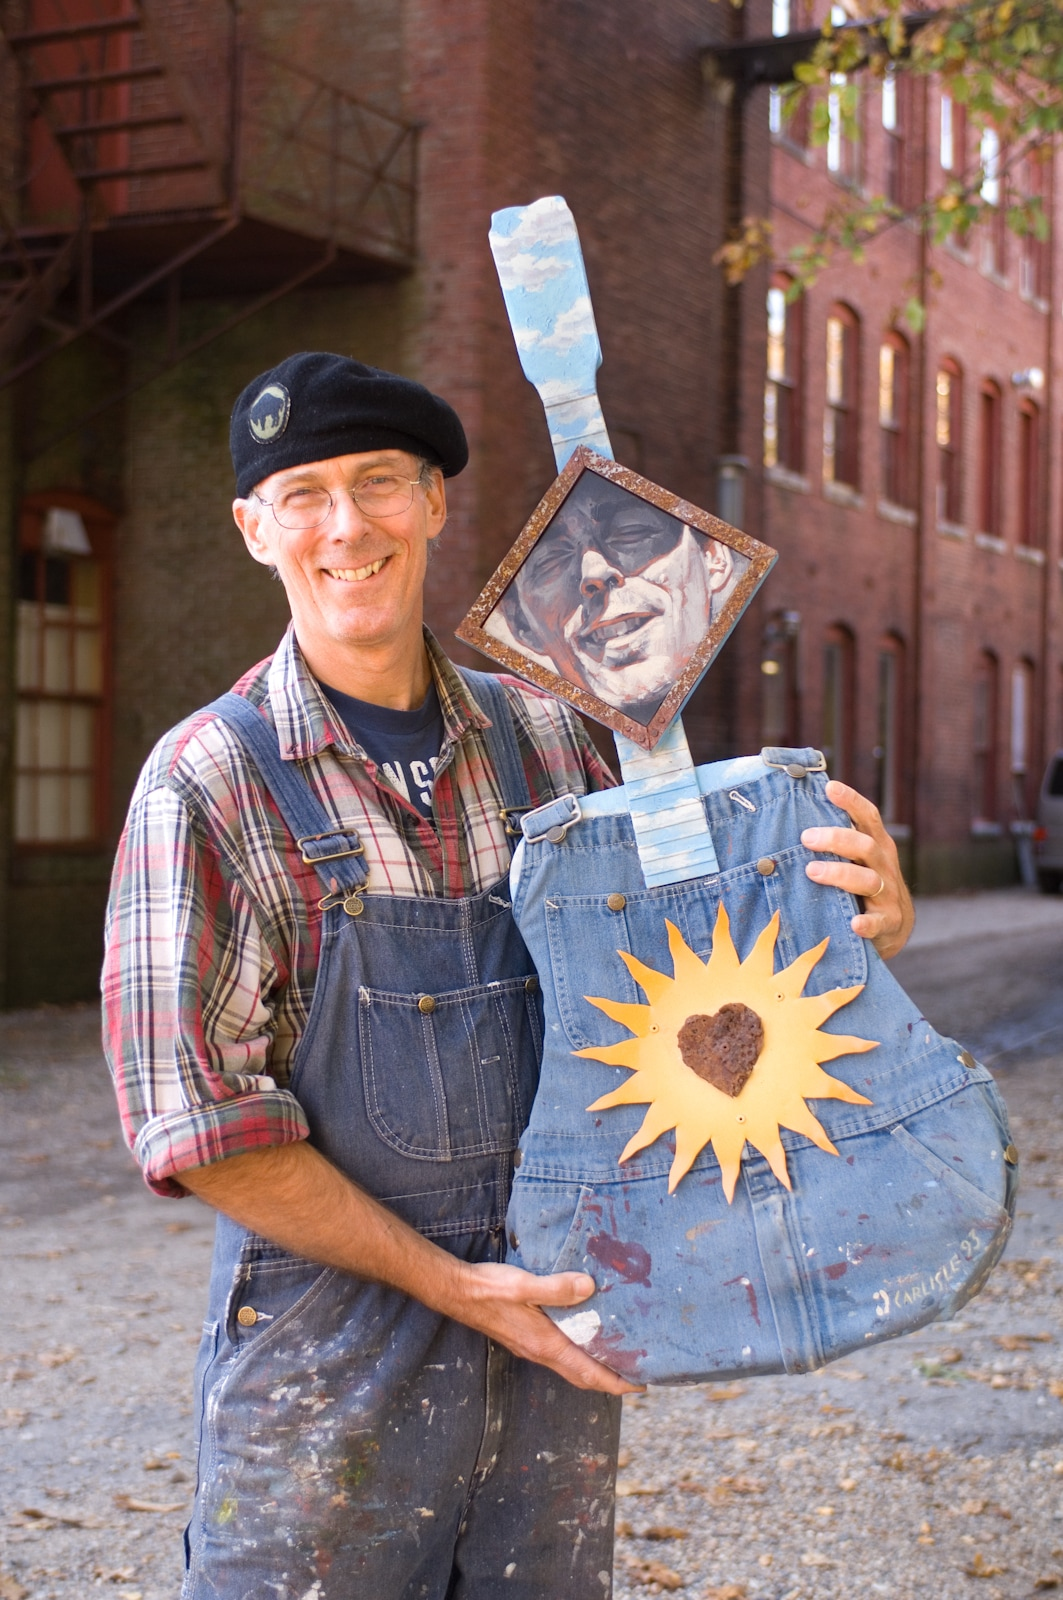 Artist with self portrait (mixed media; photo by Tim Gaudreau)